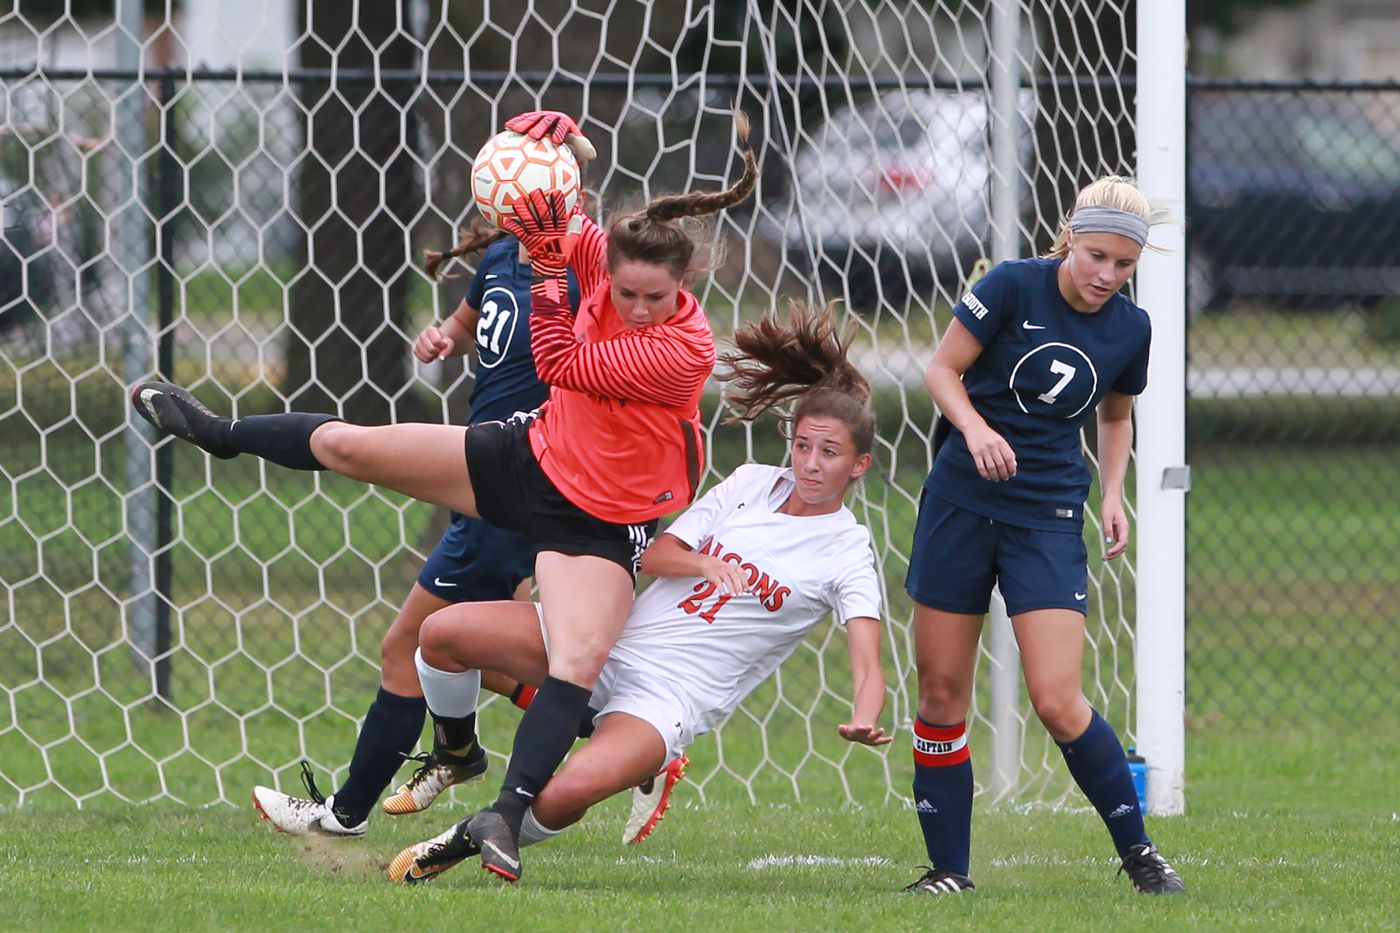 Friday's Southeastern Pa. roundup: Pennsbury win in double OT